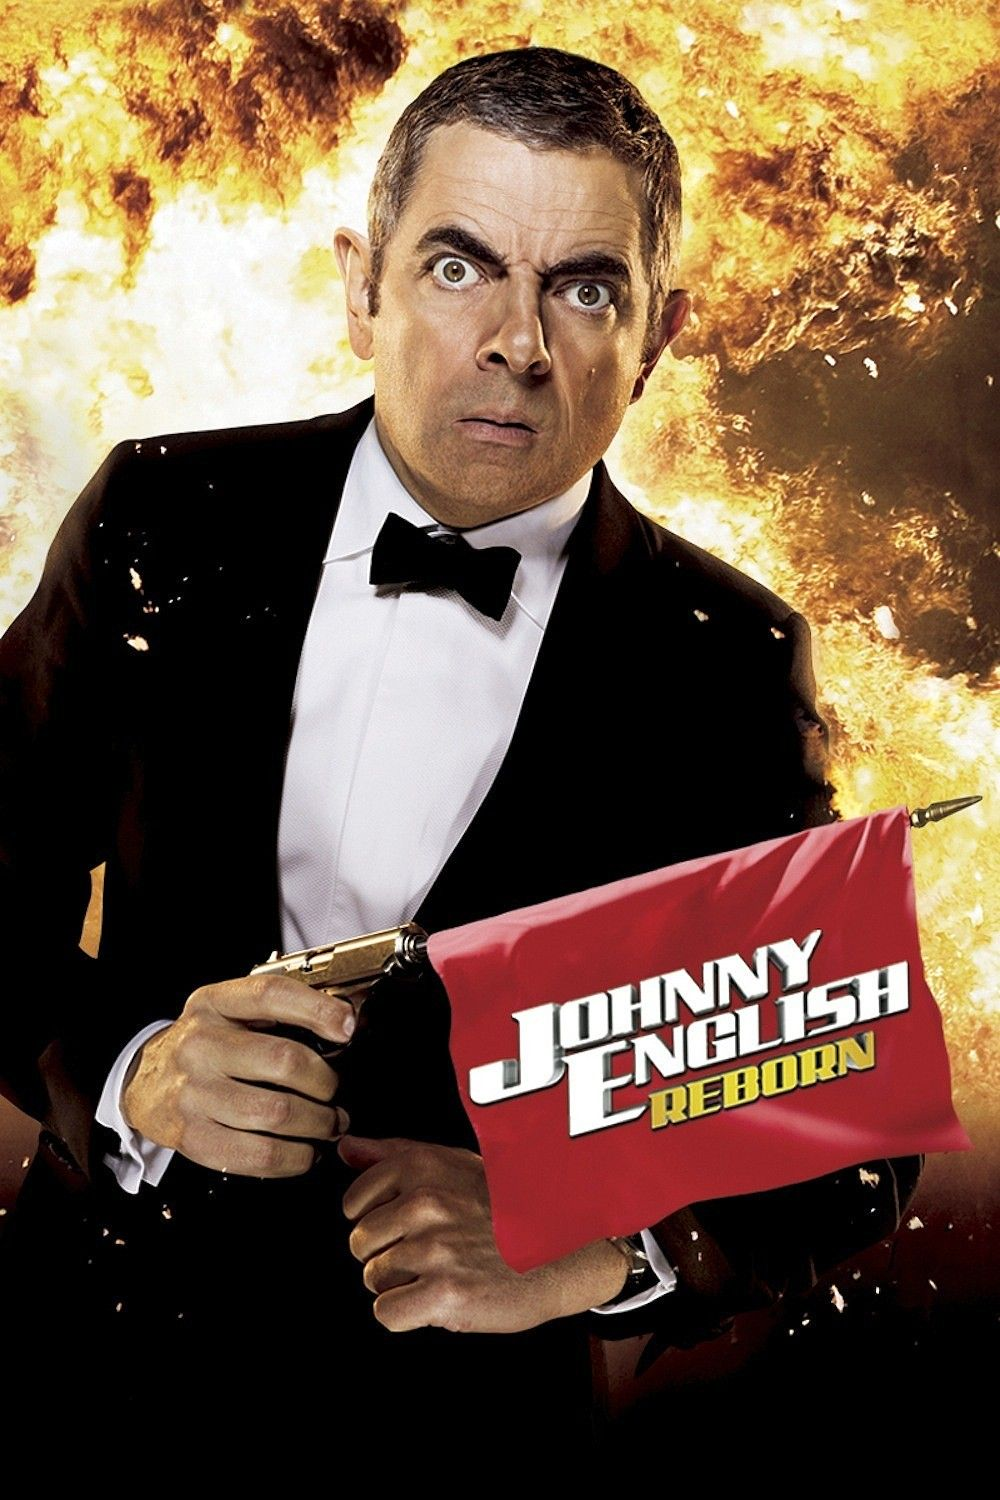 Johnny English Strikes Again In Hd 1080p Watch Johnny English